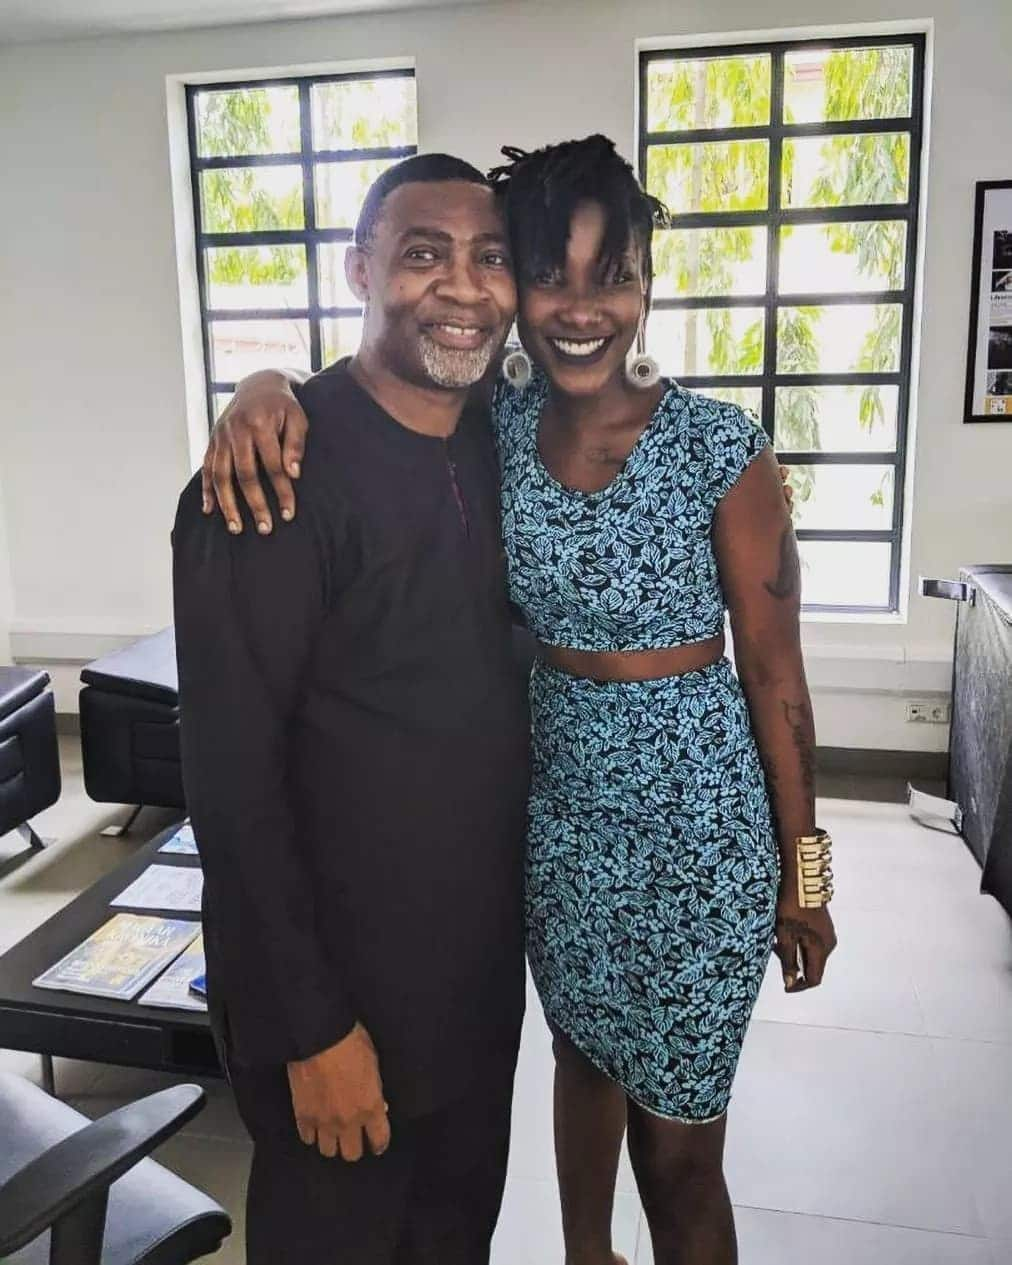 Dr. Lawrence Tetteh's pose with Ebony hours before her death